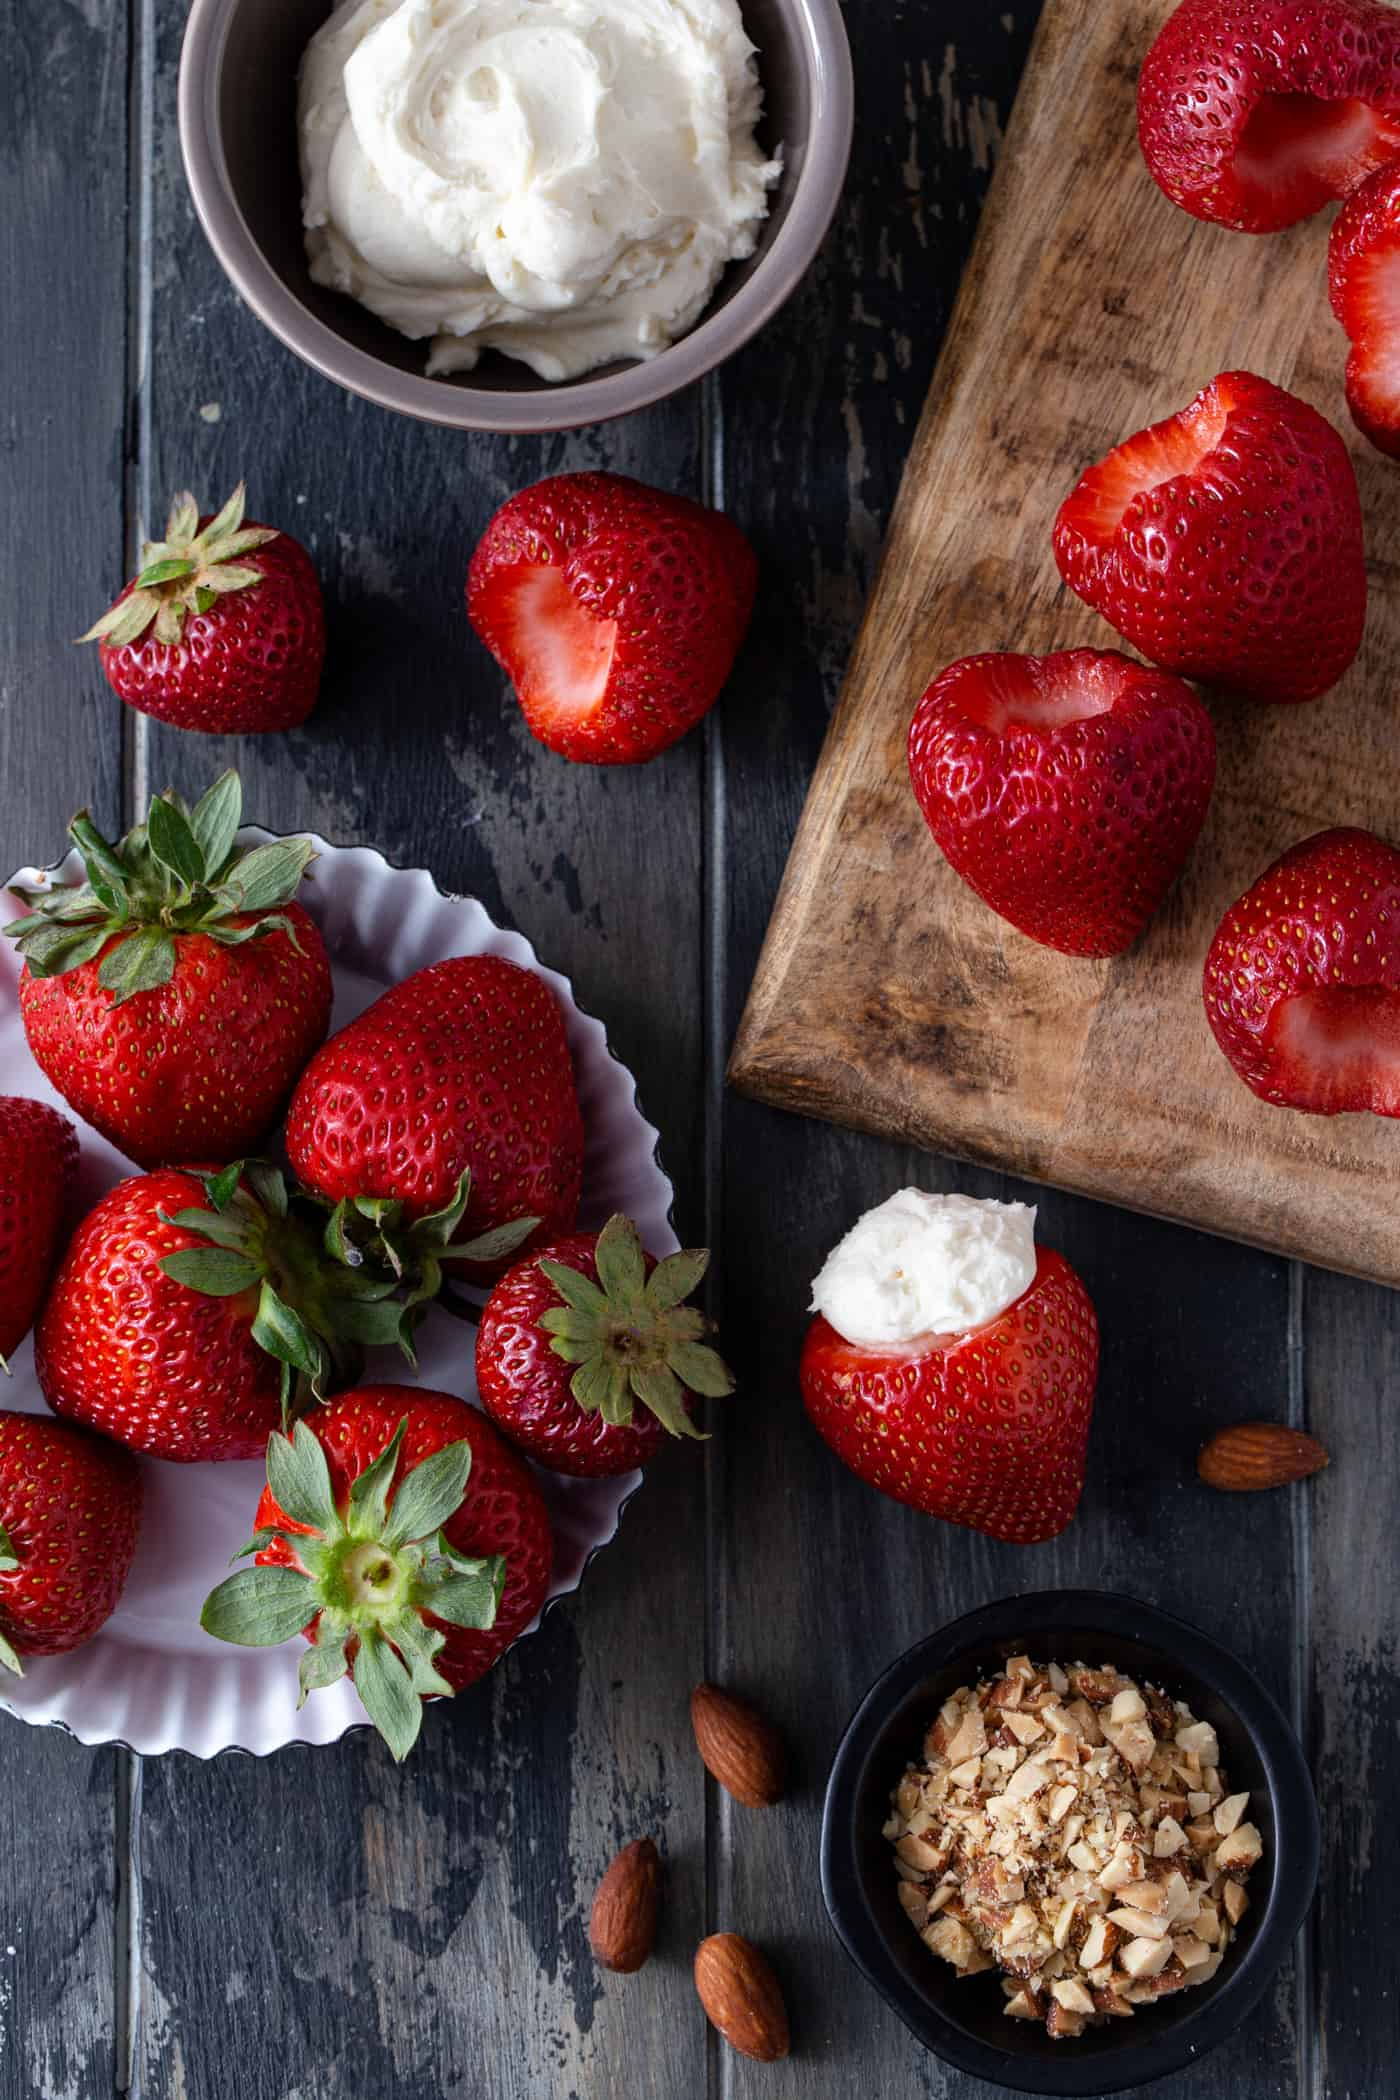 Strawberries on a wood cutting board with a bowl of cheesecake filling and a bowl of crushed almonds.